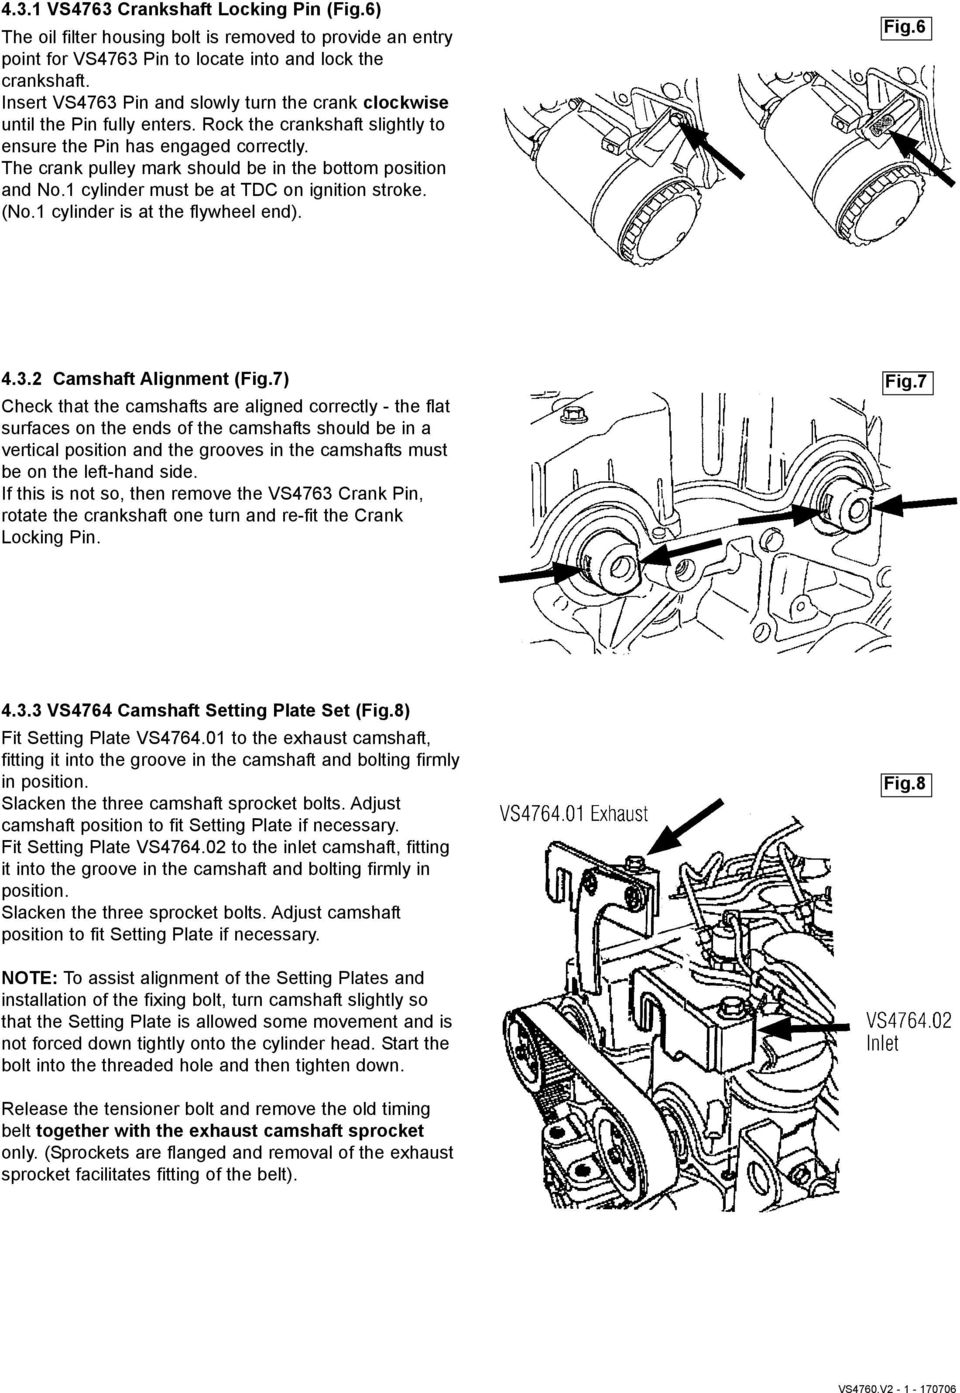 Vs4760v2 Instructions For Diesel Engine Setting Locking Tool Kit Subaru 2 Timing Diagram The Crank Pulley Mark Should Be In Bottom Position And No1 Cylinder Must